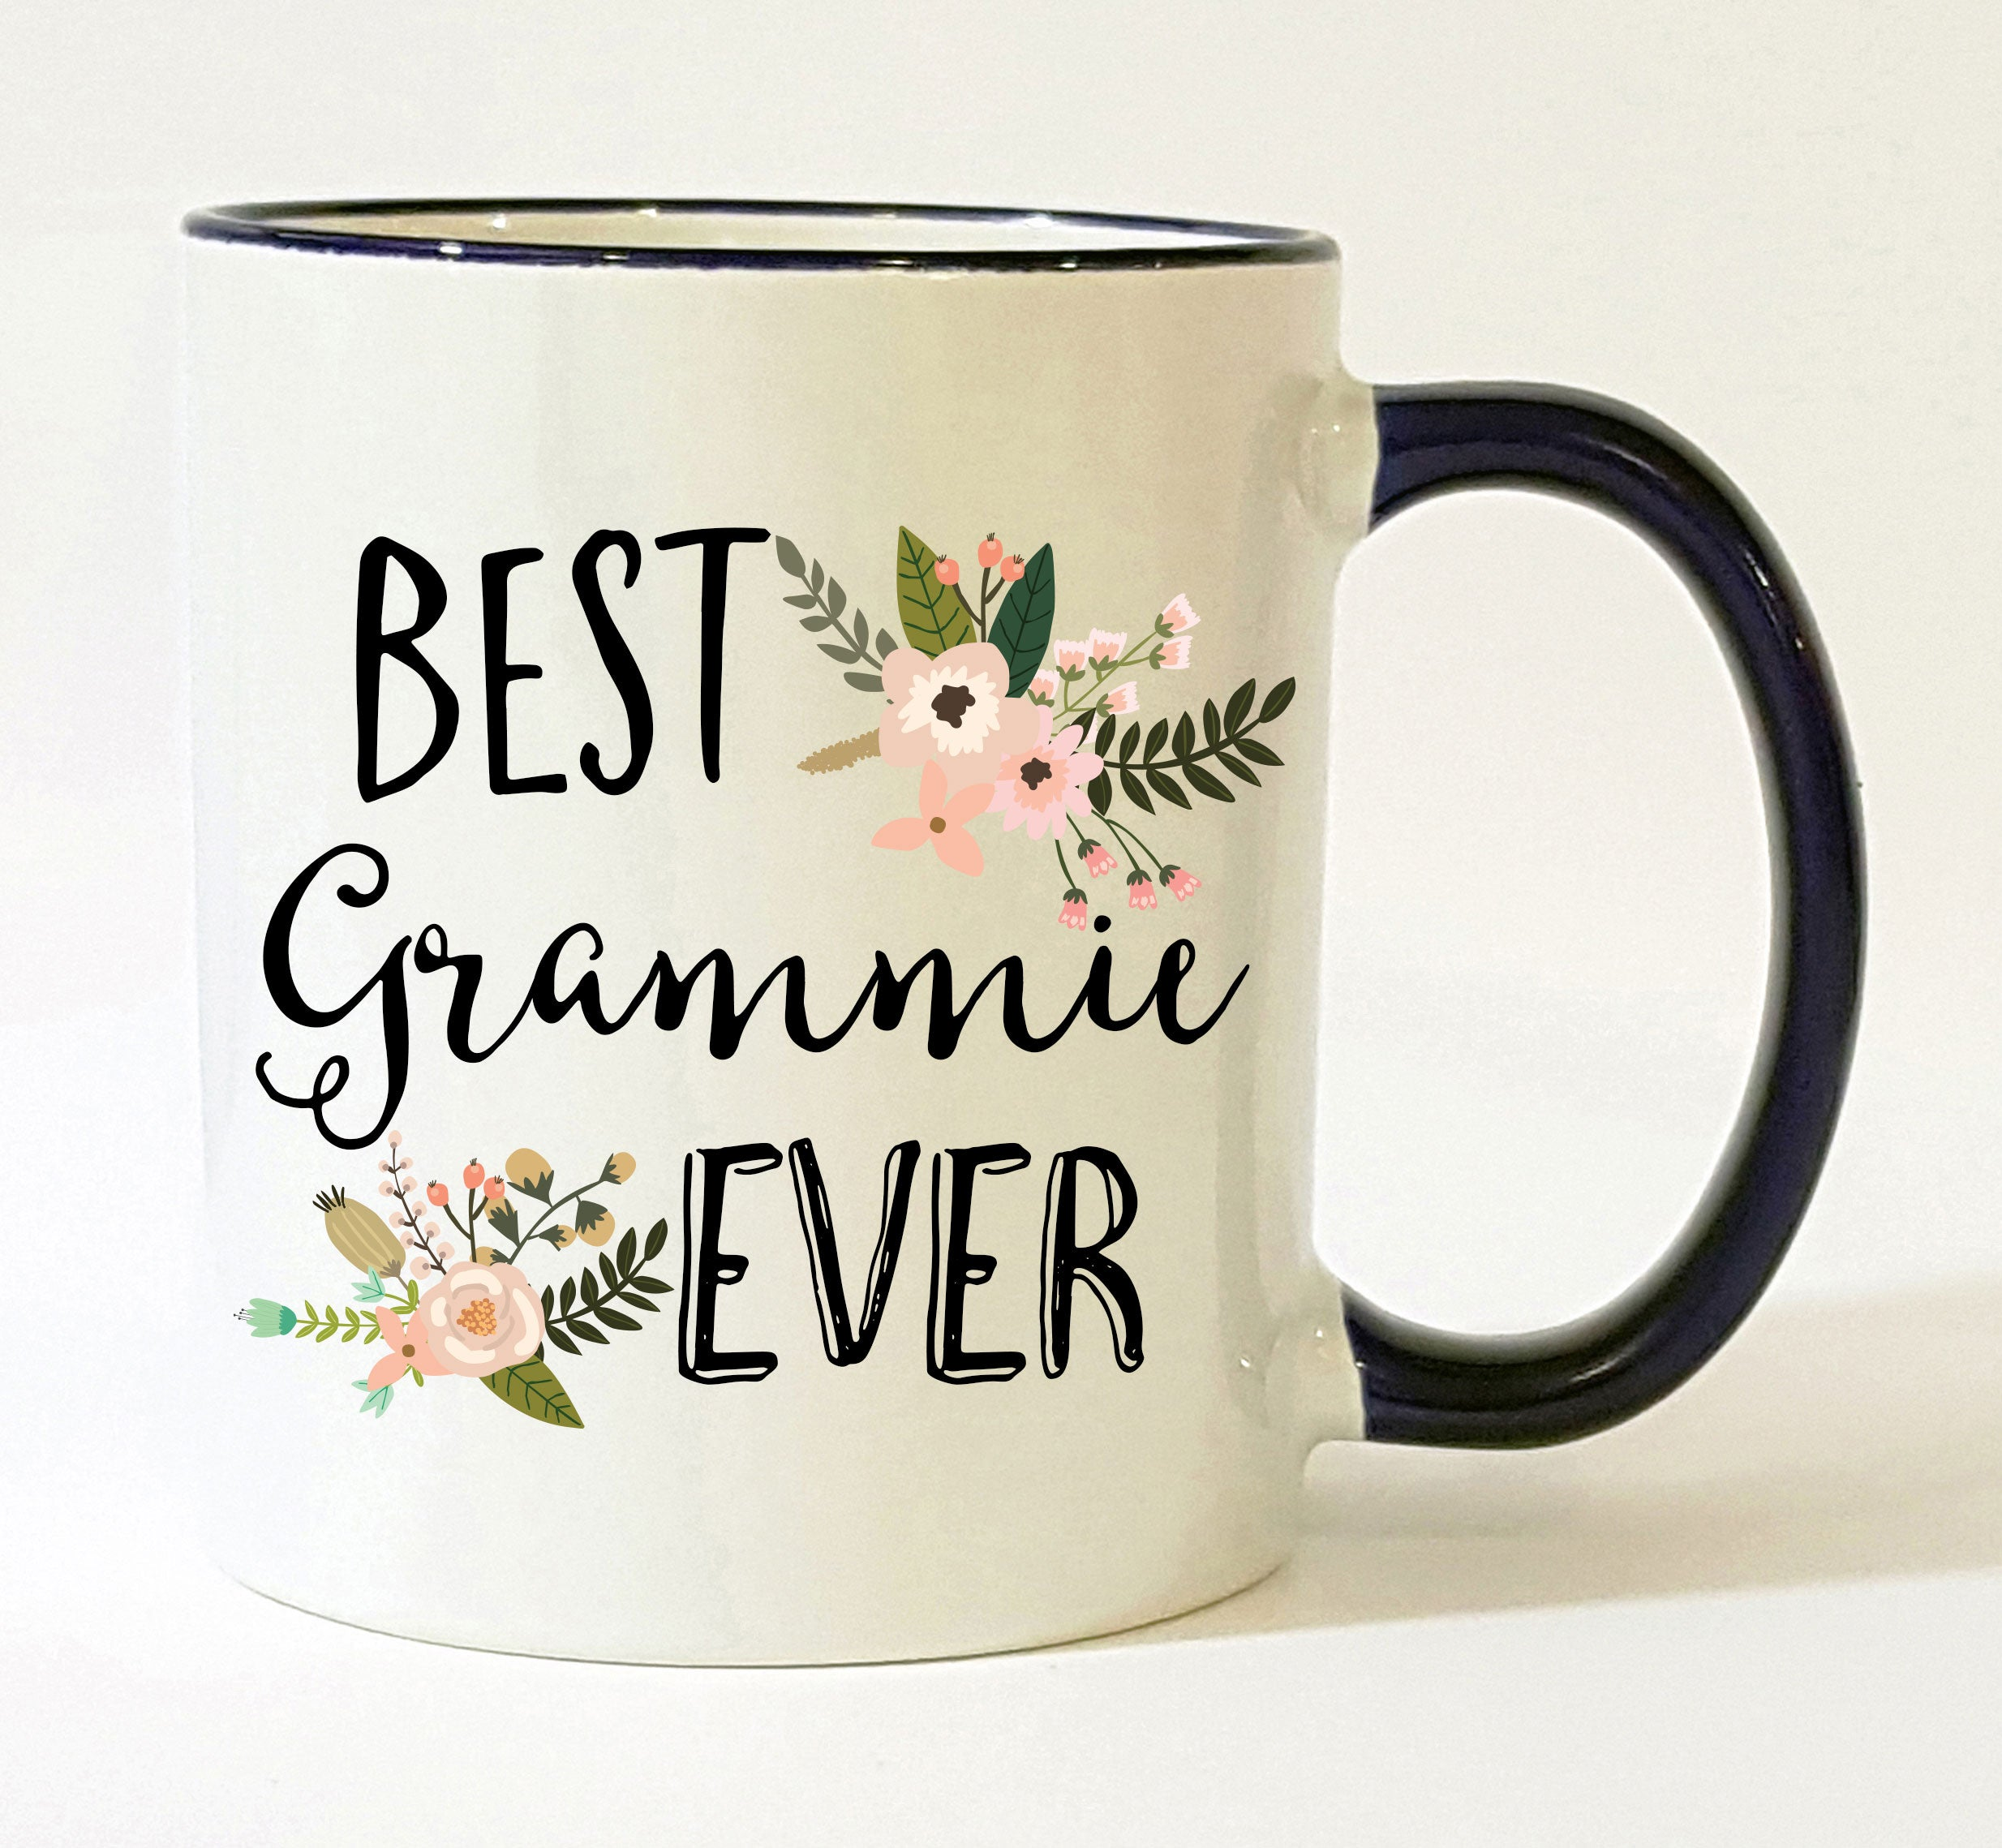 Personalized Grammie Gift / Best Grammie Ever Mug